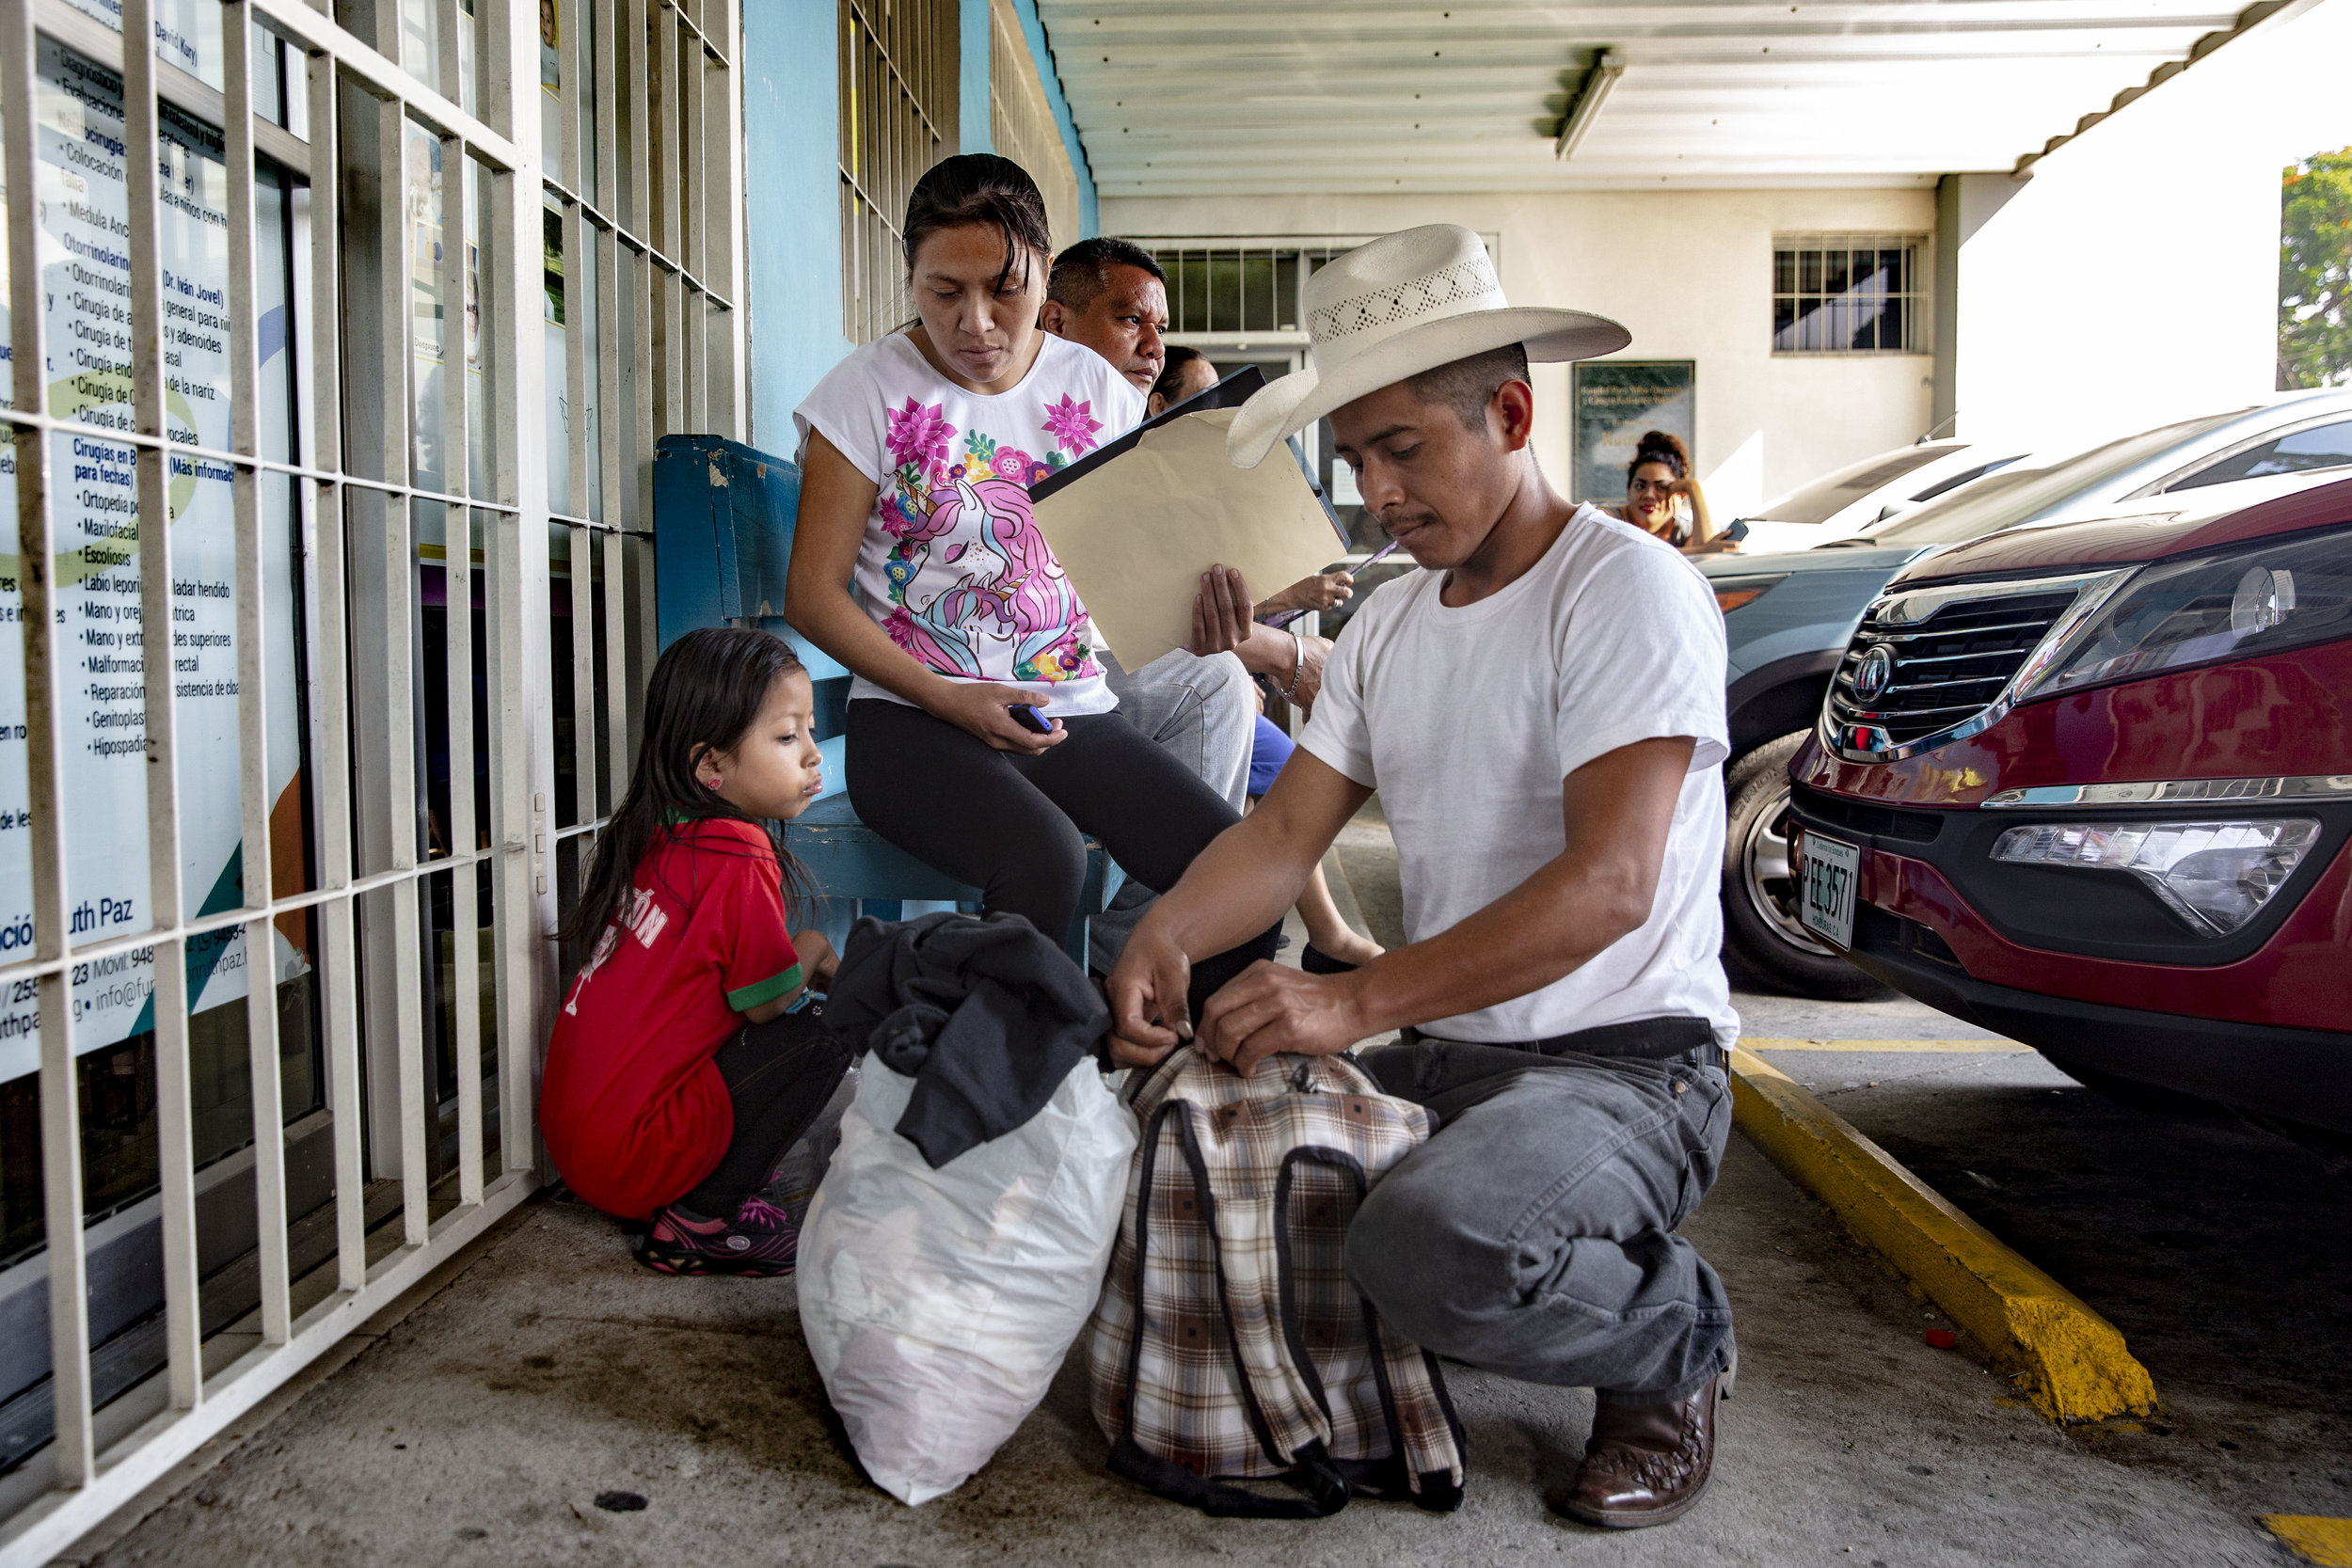 A family from Colon, travelled for eight hours and 190km (120miles) by bus to arrive at the Ruth Paz hospital in San Pedro Sula, to have their daughter Mirna of five years old, a medical examination for heart realted problems.